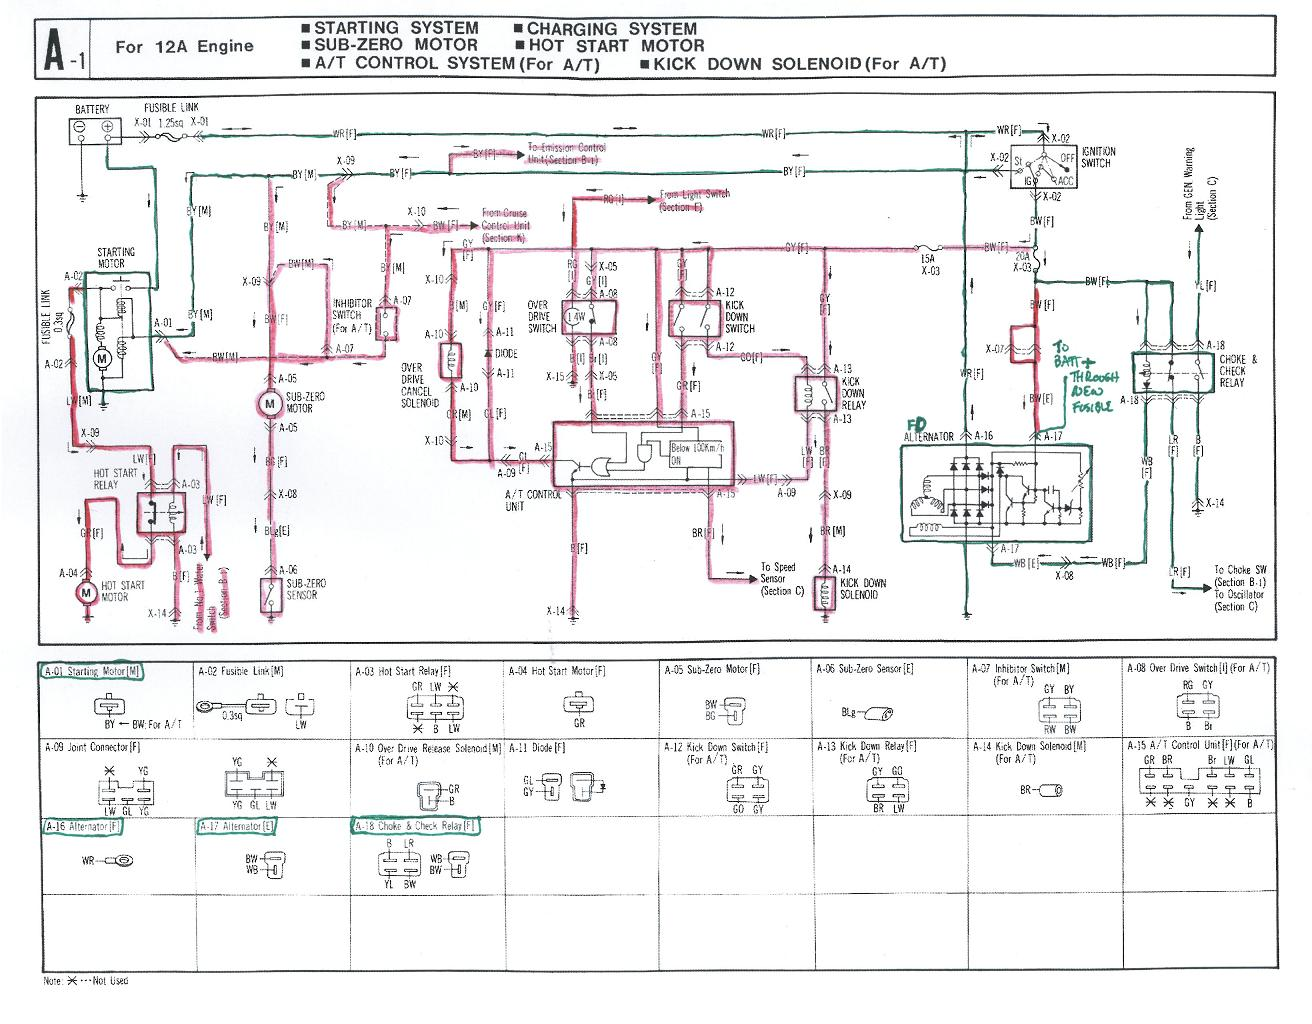 Kenworth Truck Wiper Wiring Diagrams | tuber-database Wiring Diagram Models  - tuber-database.hoteldelmarlidodicamaiore.it | 1998 Kenworth Wiring Diagram |  | wiring diagram library